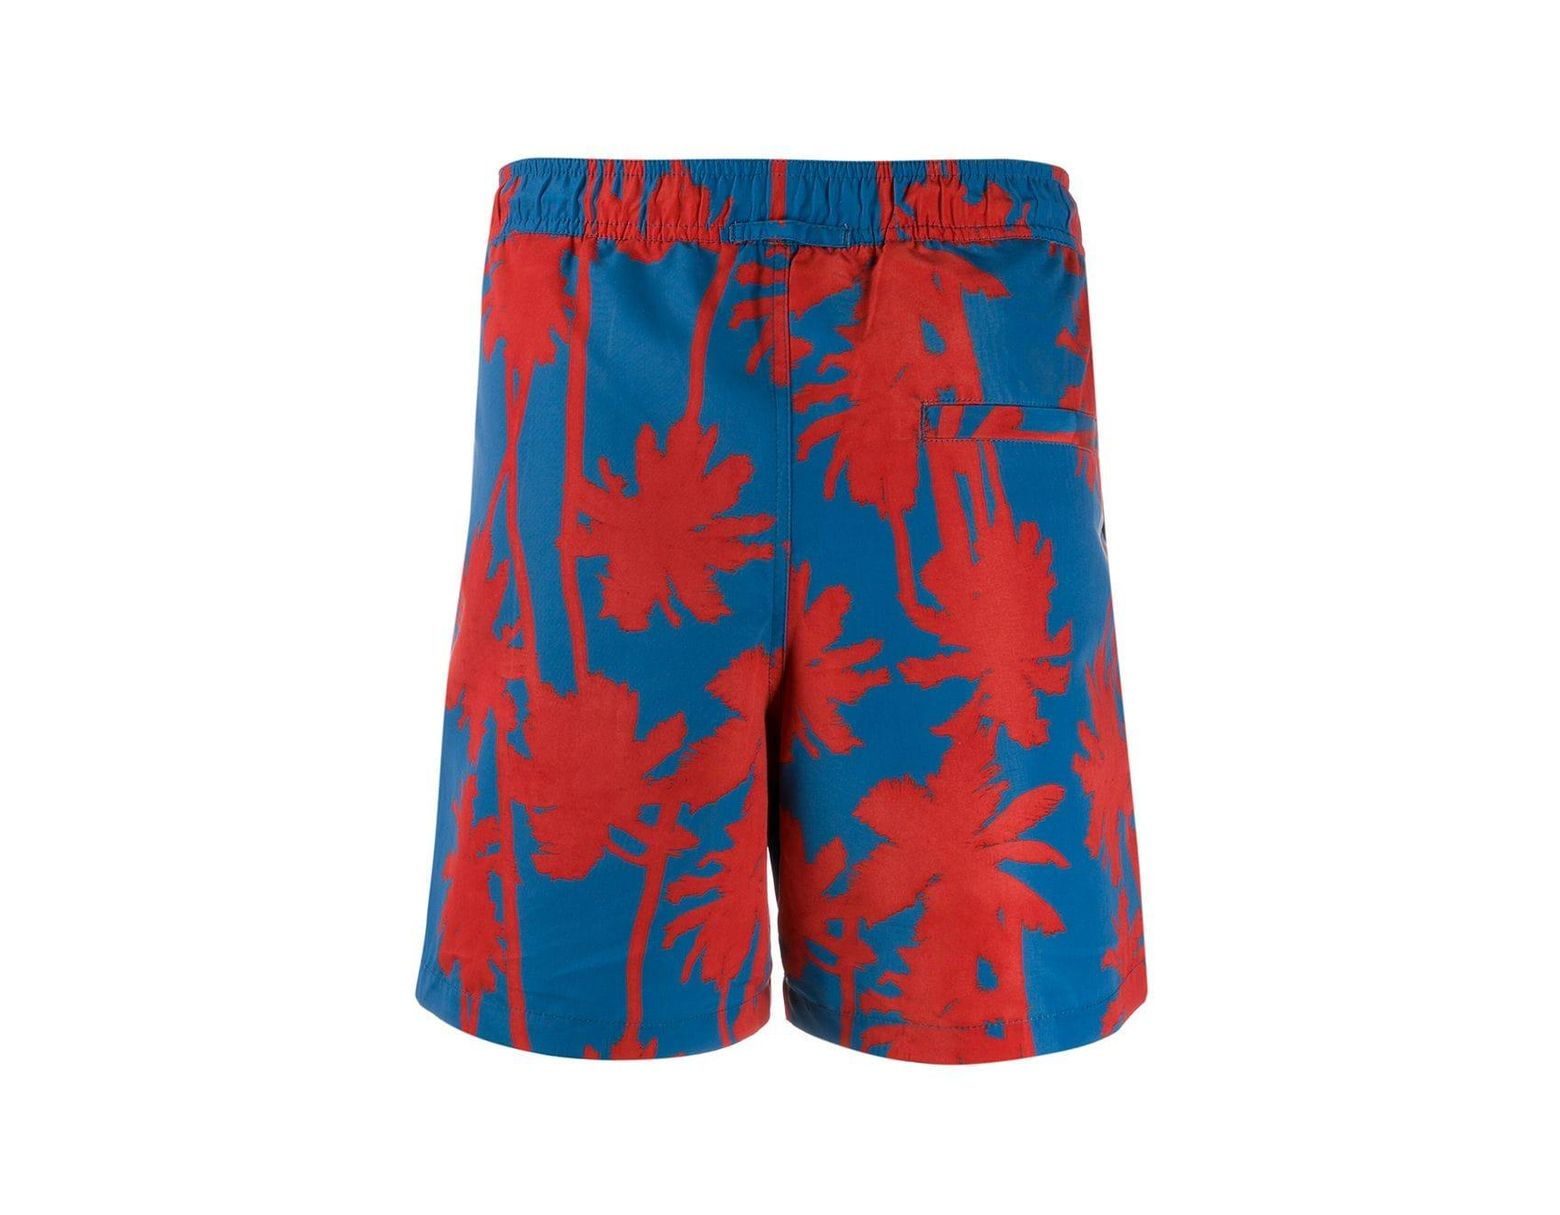 8417586bbe J.Lindeberg Printed Banks Swimming Shorts in Blue for Men - Lyst